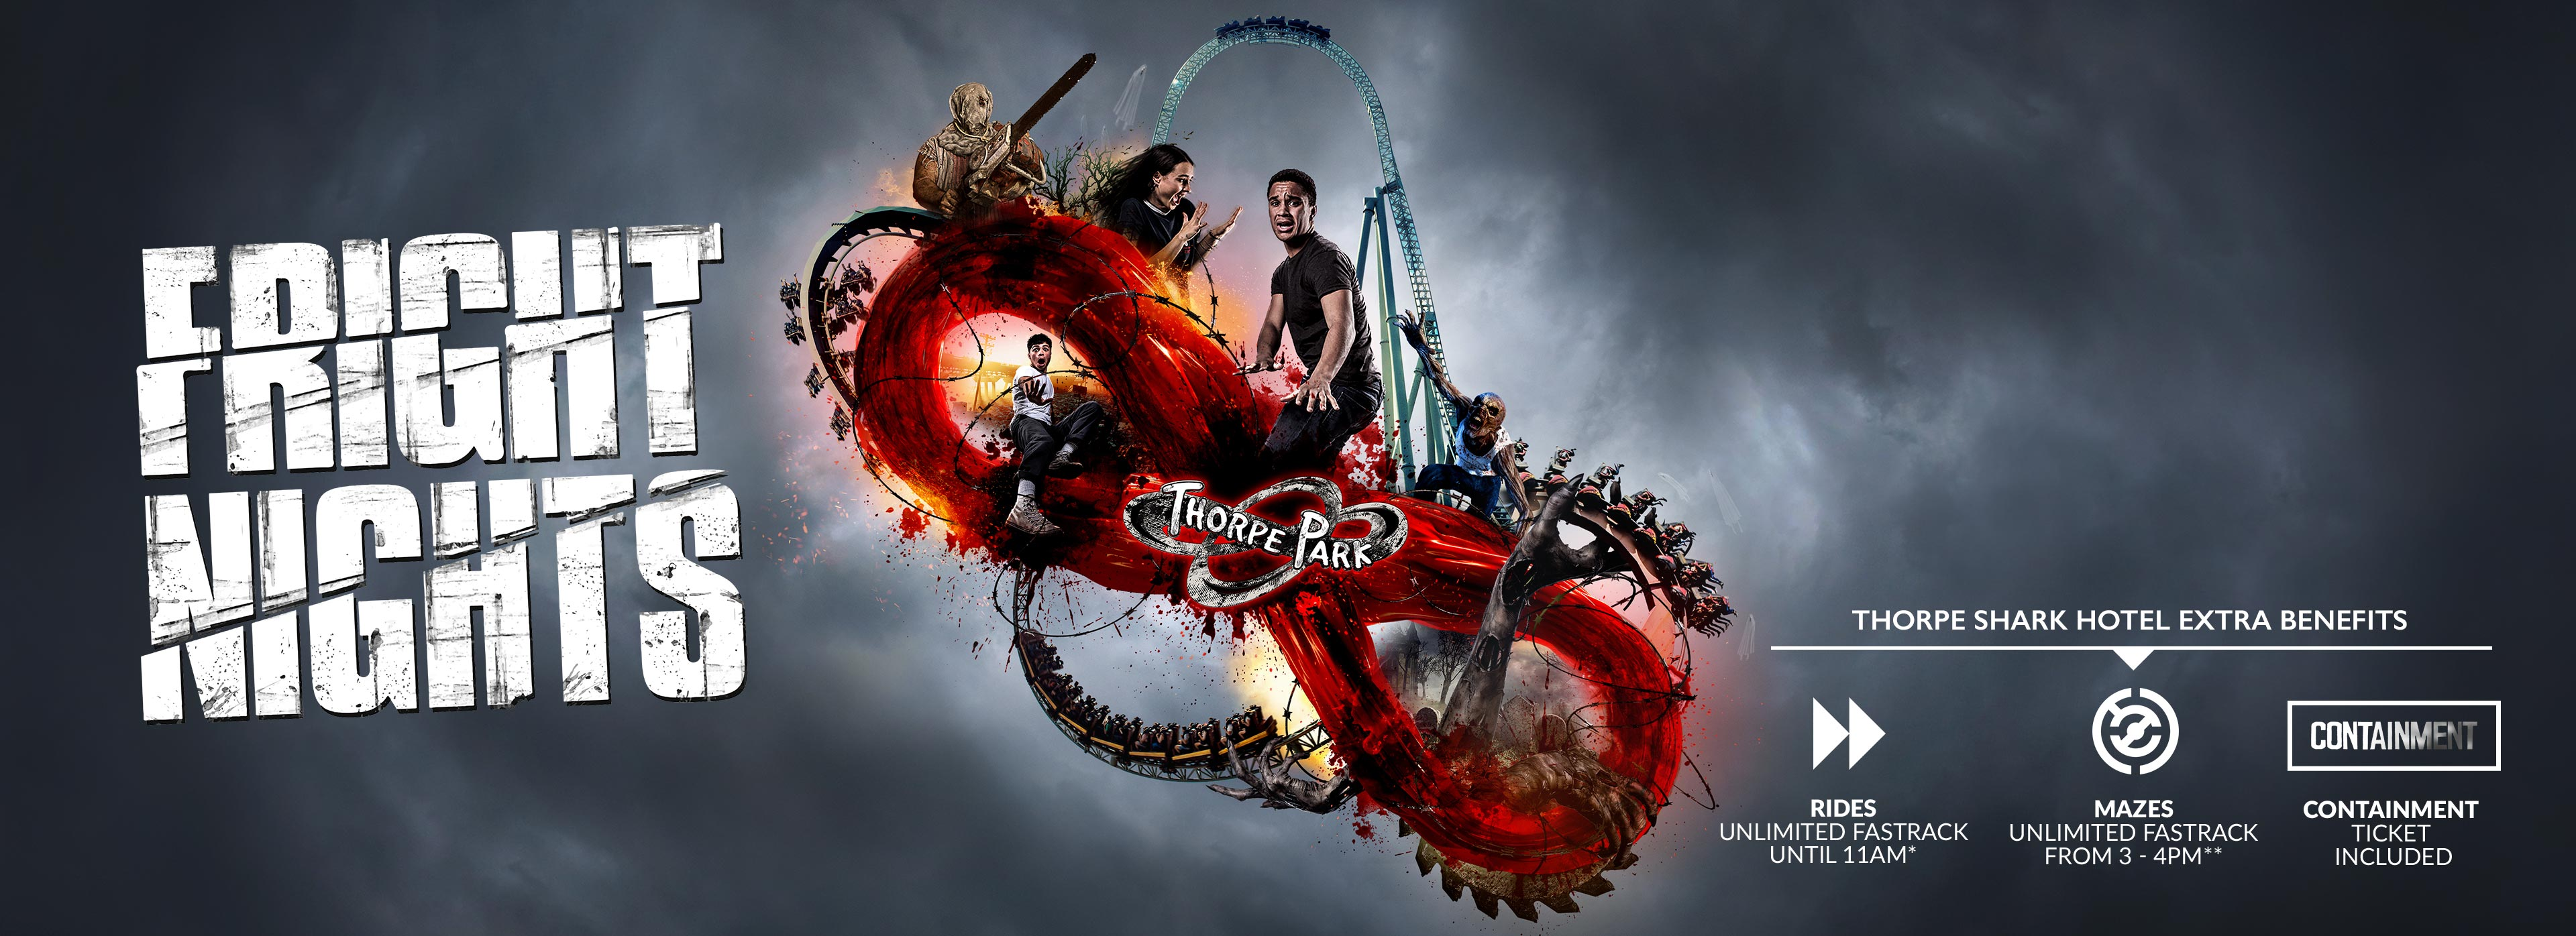 FRIGHT NIGHTS at THORPE PARK Resort